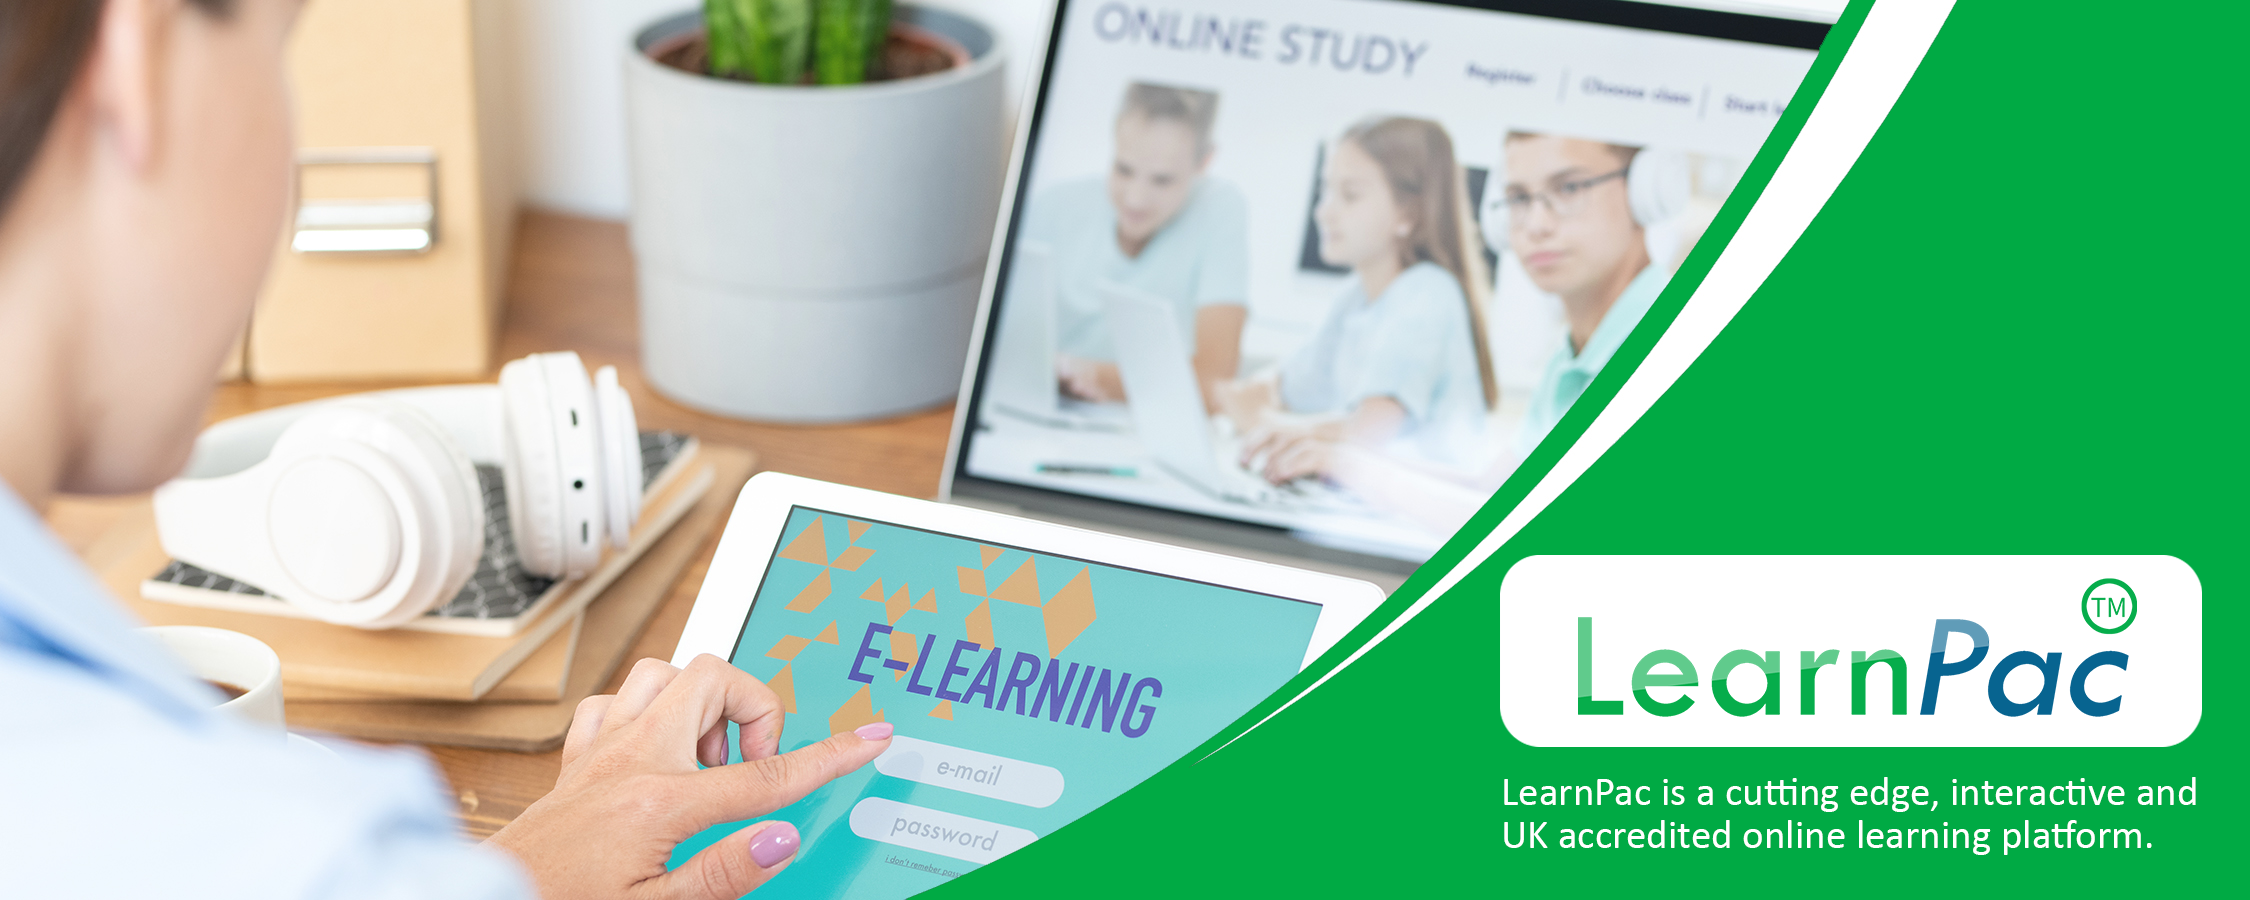 Safeguarding Adults and Children - Online Learning Courses - E-Learning Courses - LearnPac Systems UK -